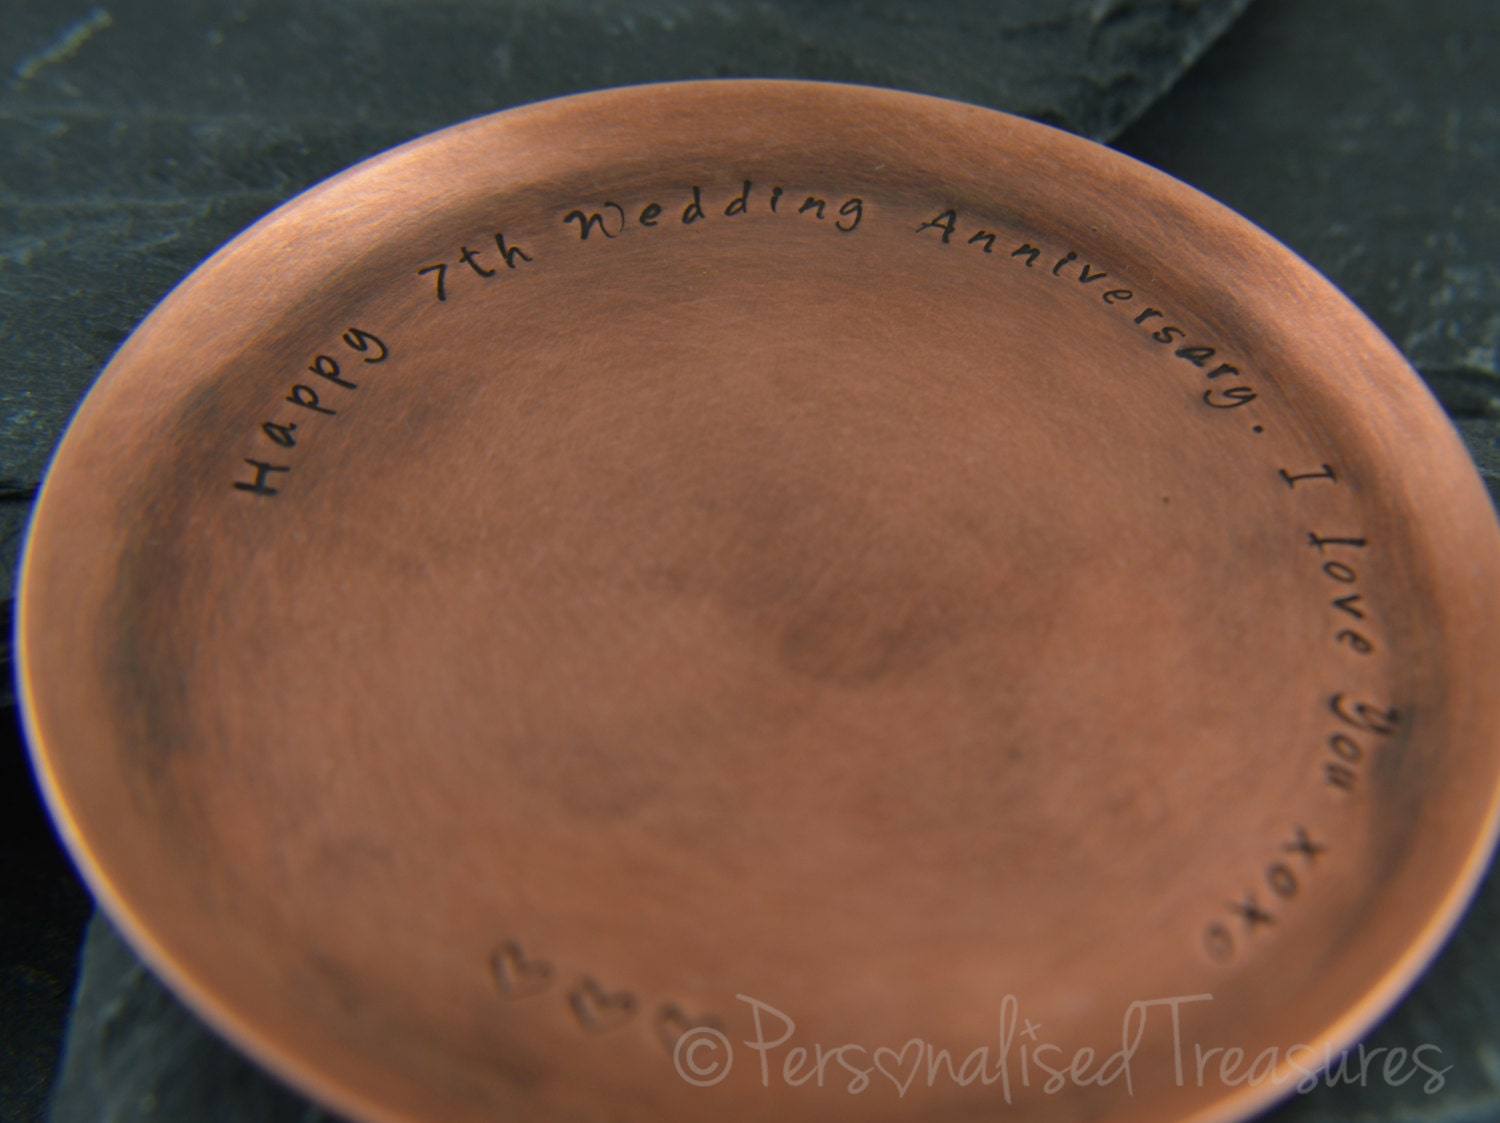 Gifts For 7th Wedding Anniversary: Personalized Copper Coaster Gift For 7th By